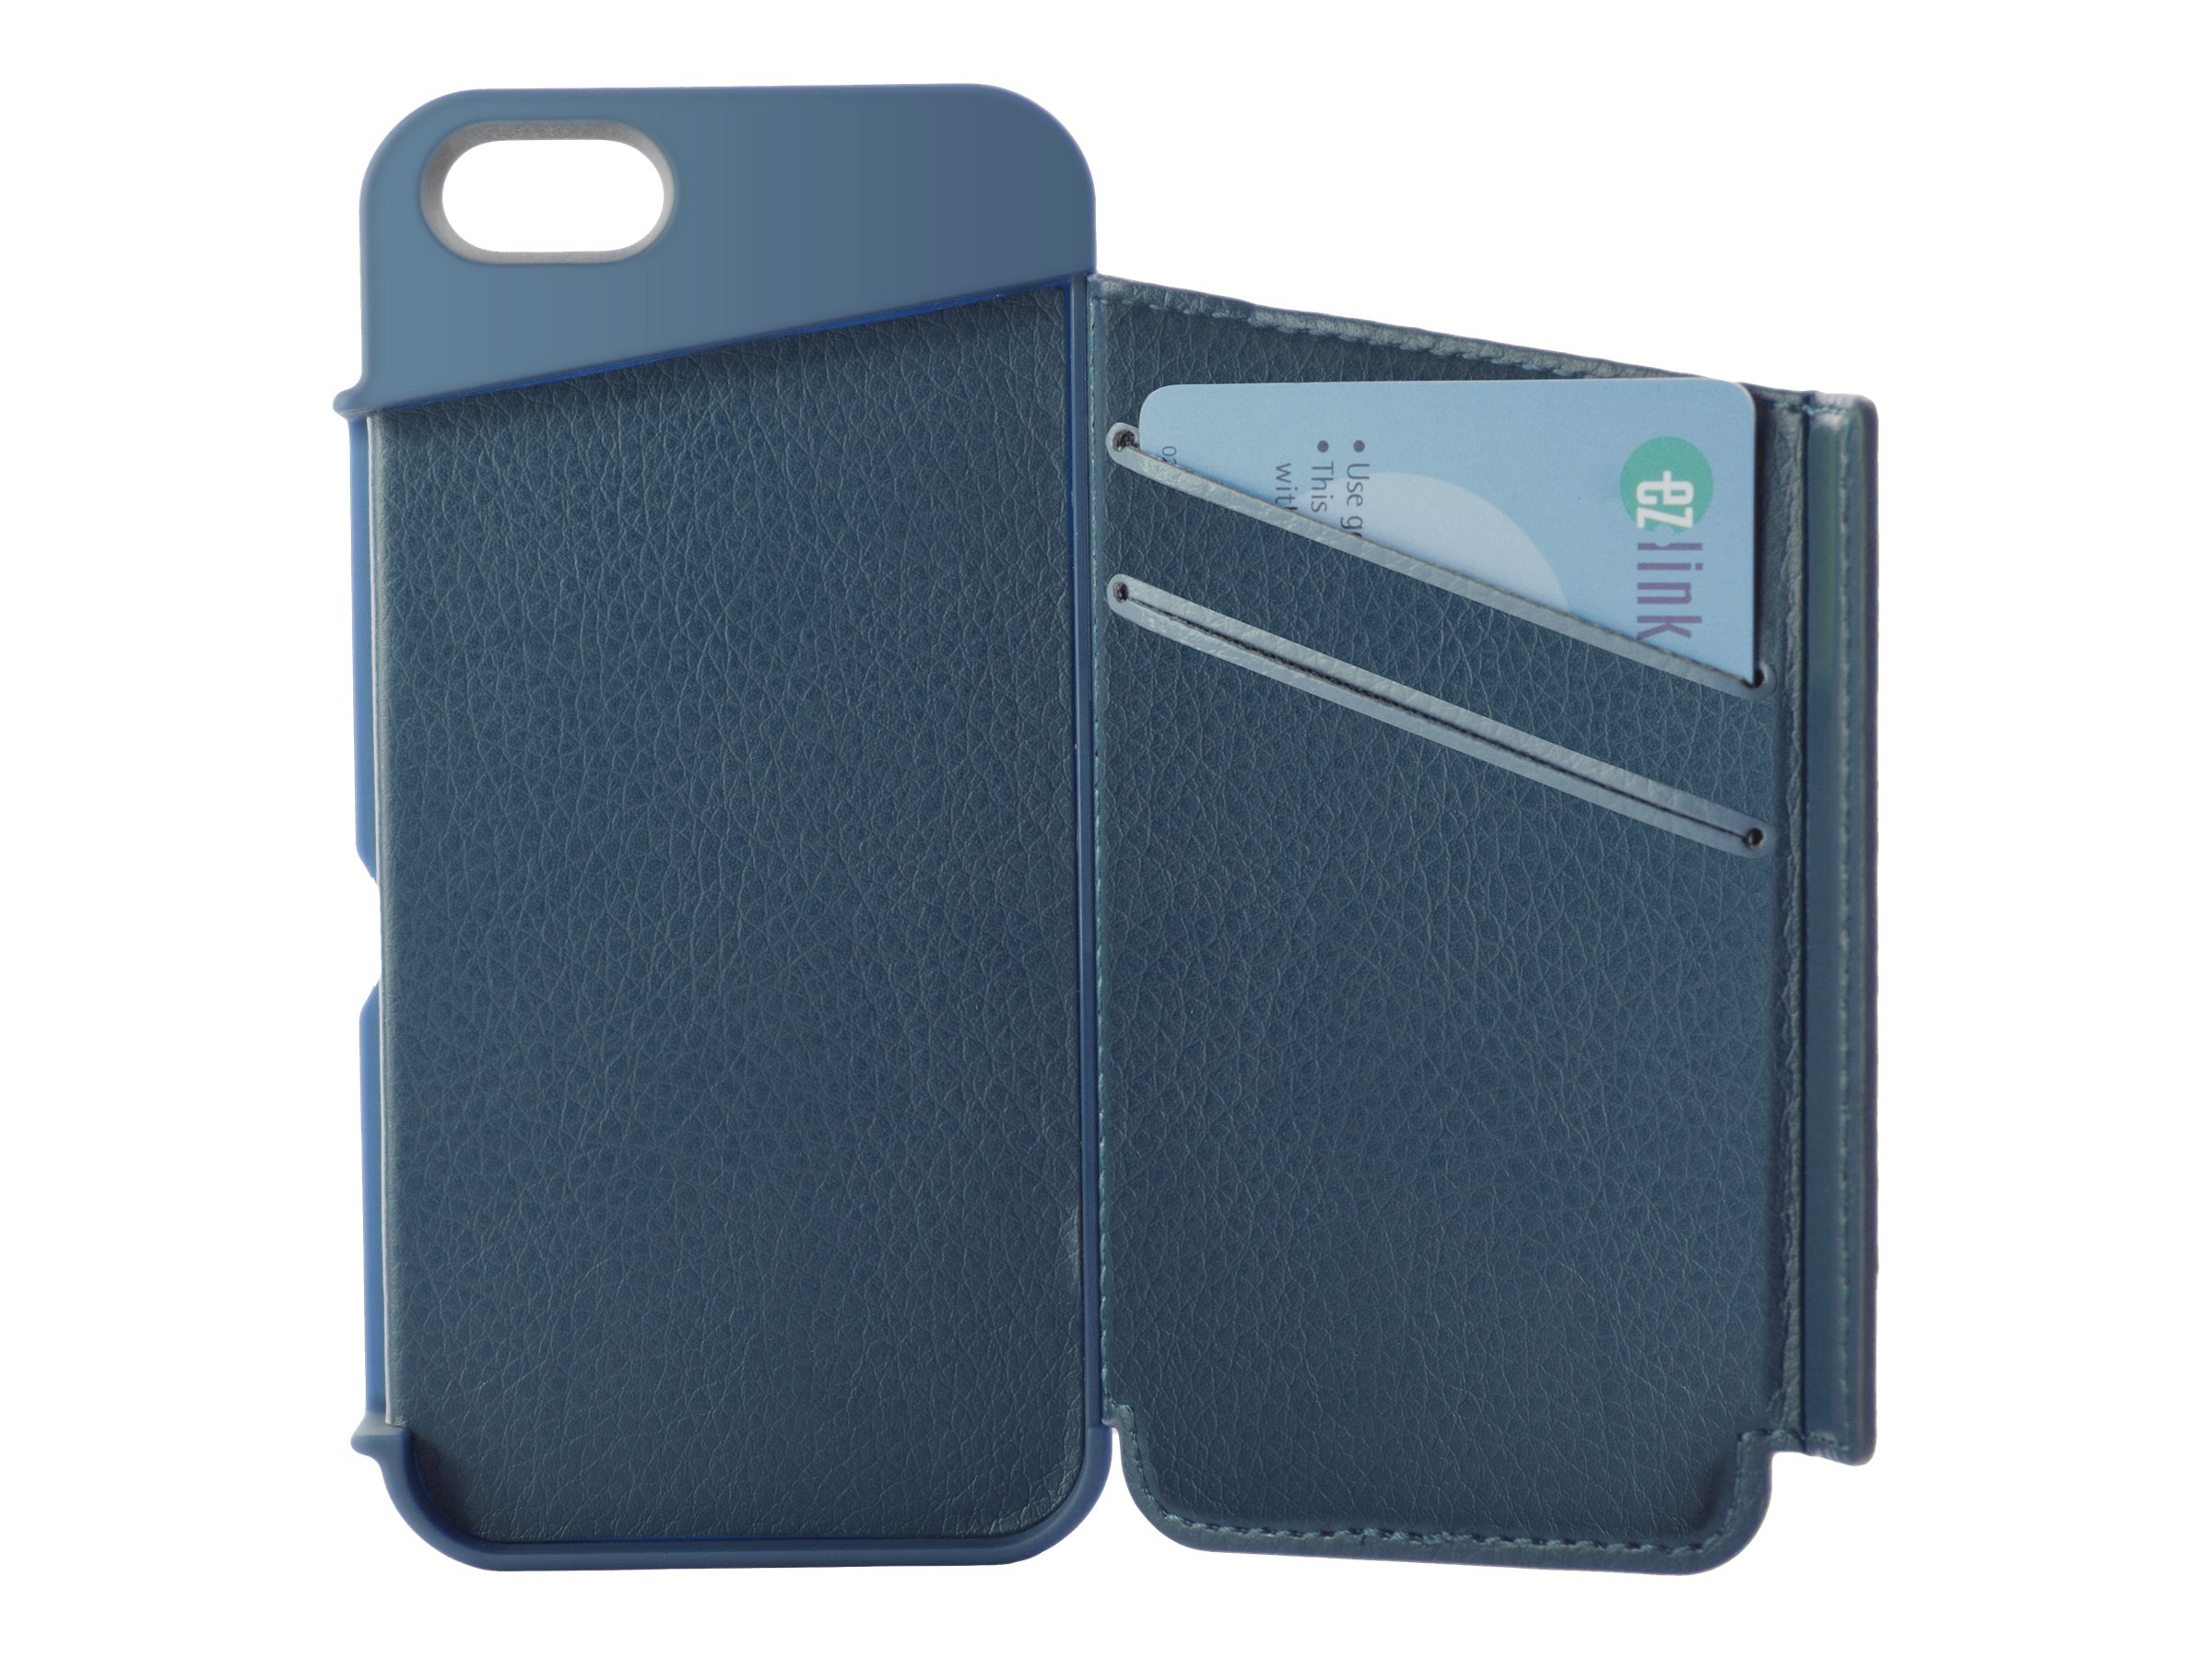 Targus Slidercase for iPhone 5, Blue, THD02202US